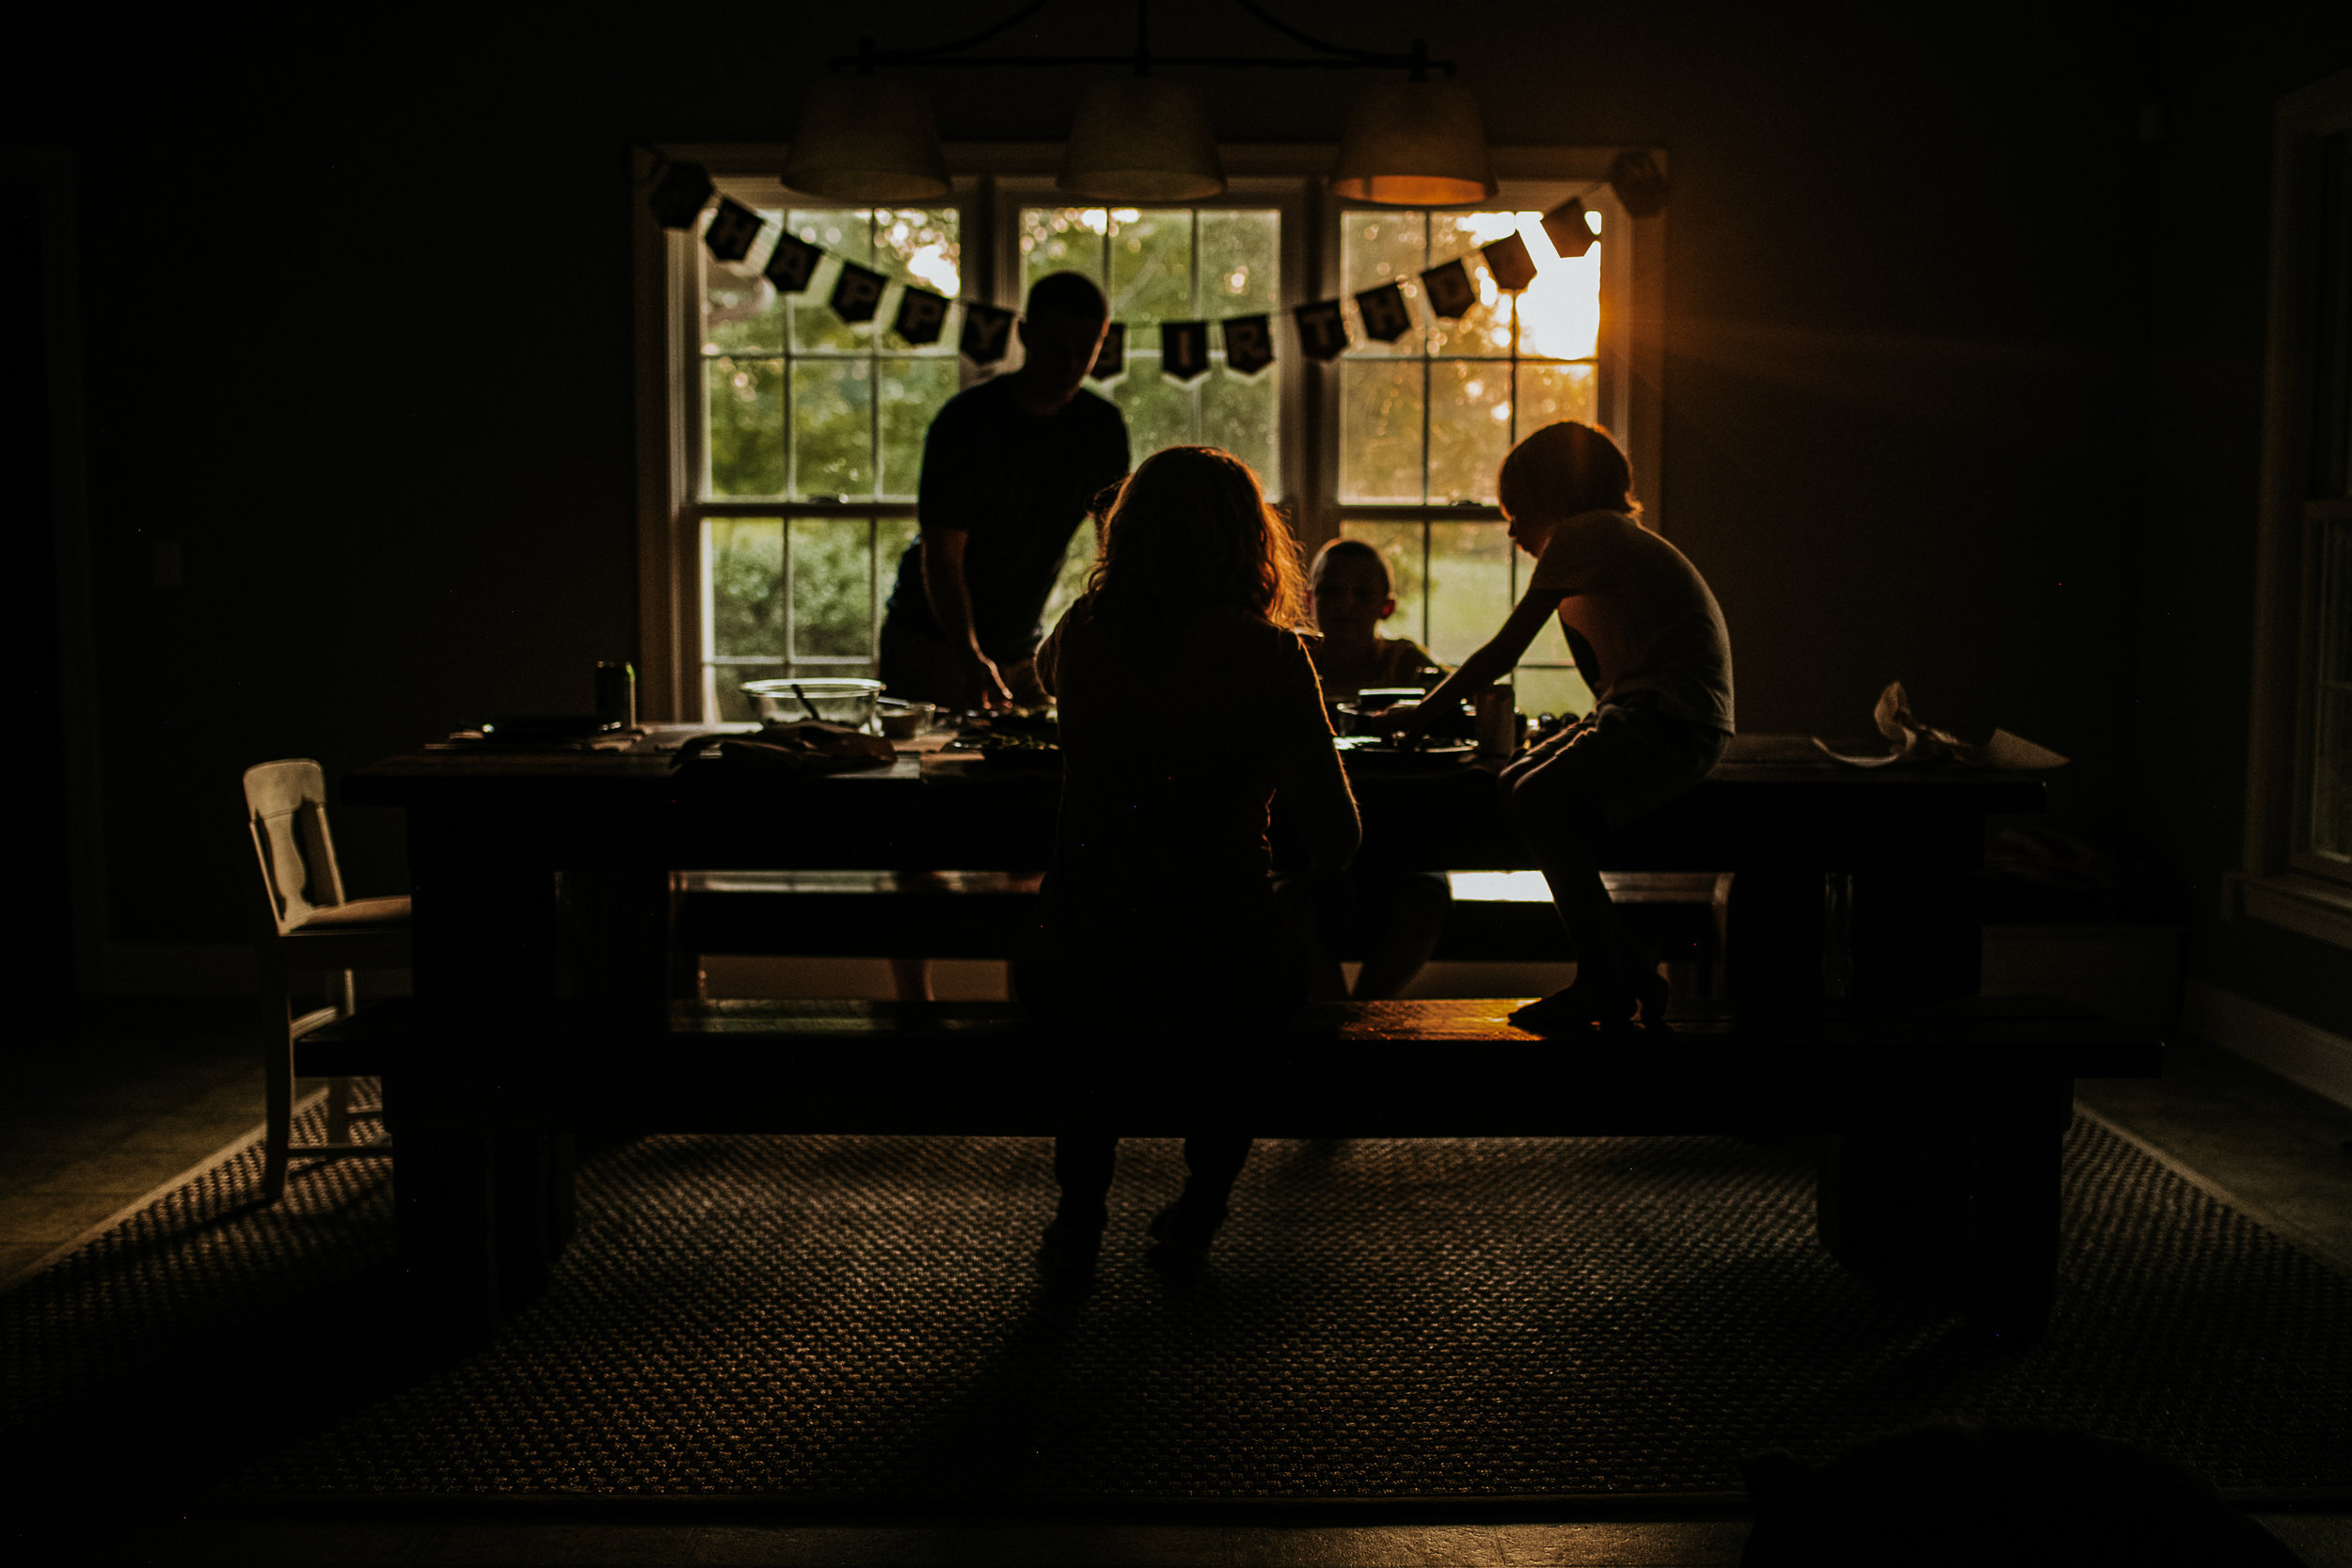 Family dinners were always a really important part of my childhood and I love seeing them prioritized in other families too